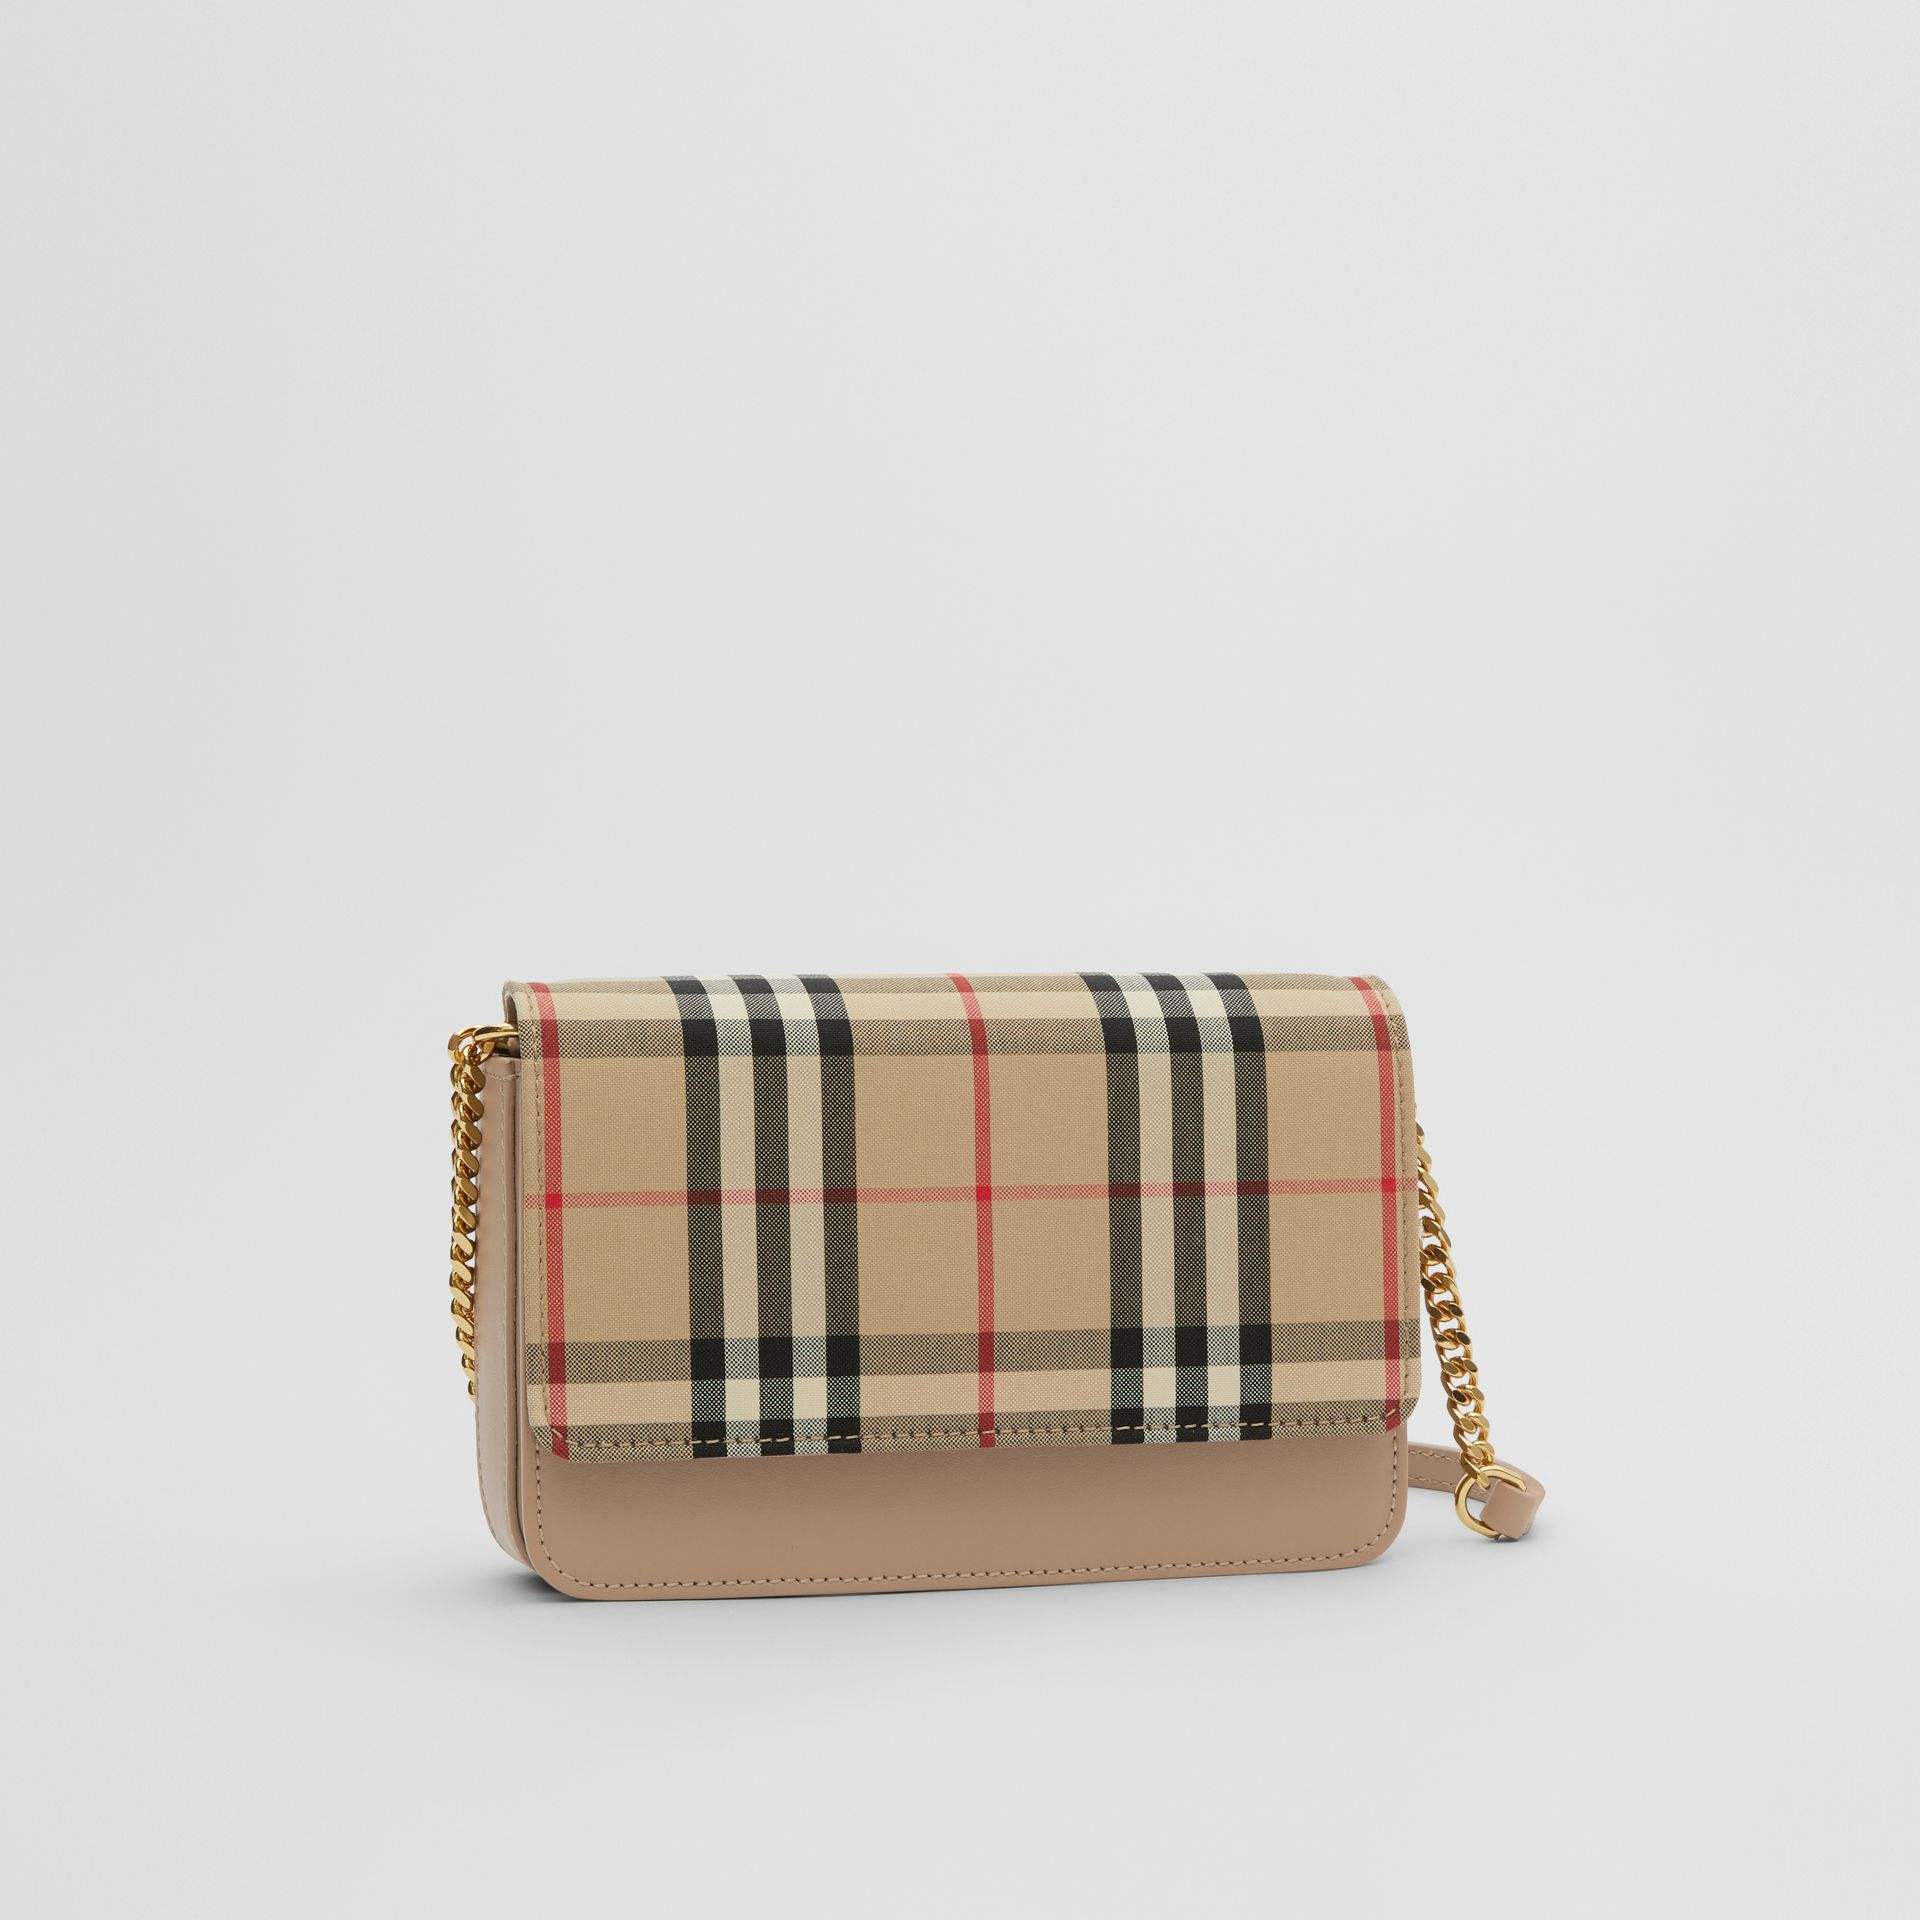 Vintage Check Canvas and Leather Bag in Honey - Women | Burberry - gallery image 4